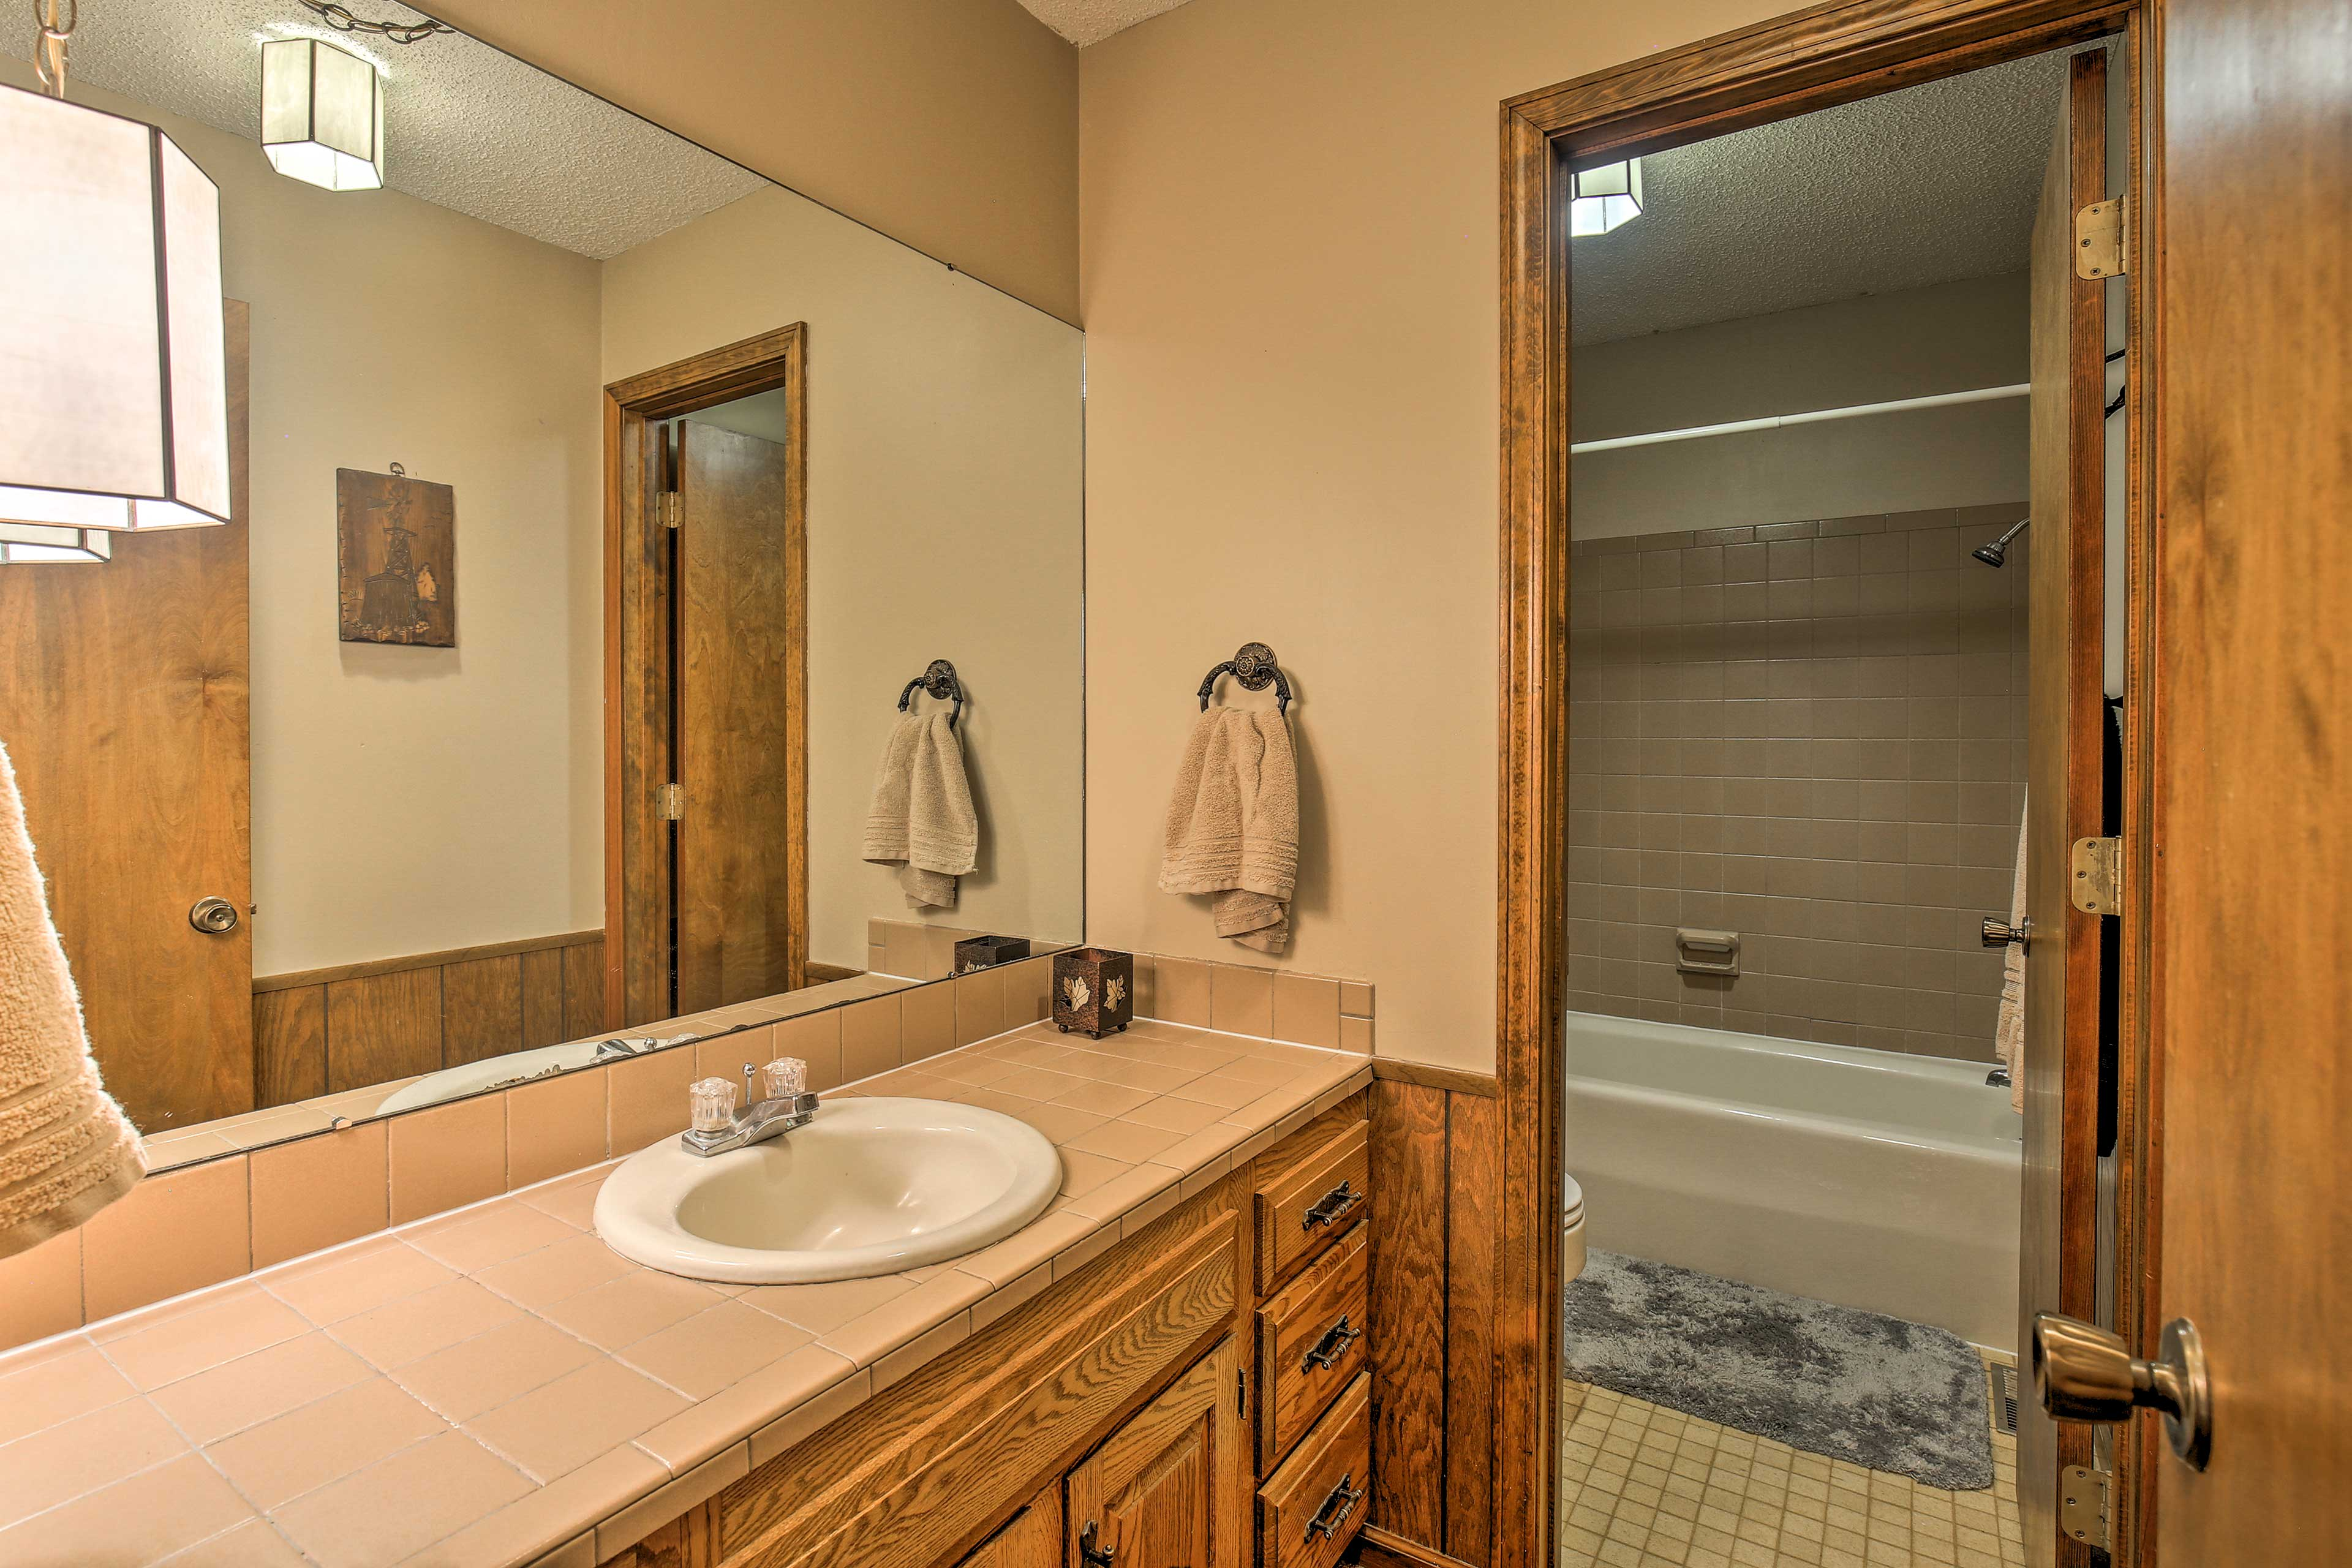 A full bathroom is located just down the hallway for your convenience.